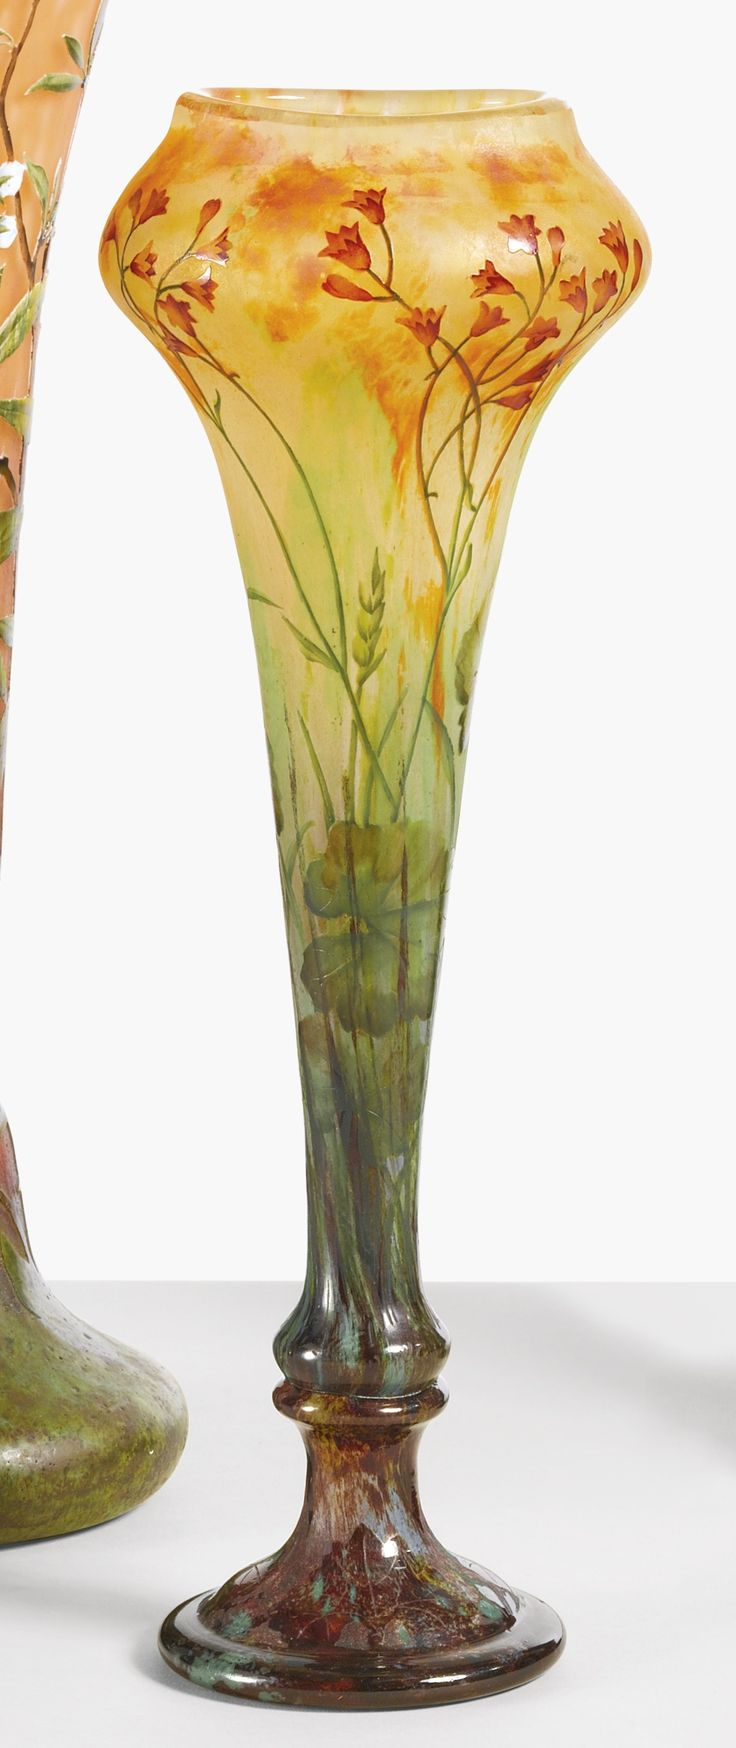 Art Nouveau Daum 'Wildflower Vase' ~ internally decorated, etched and enameled glass